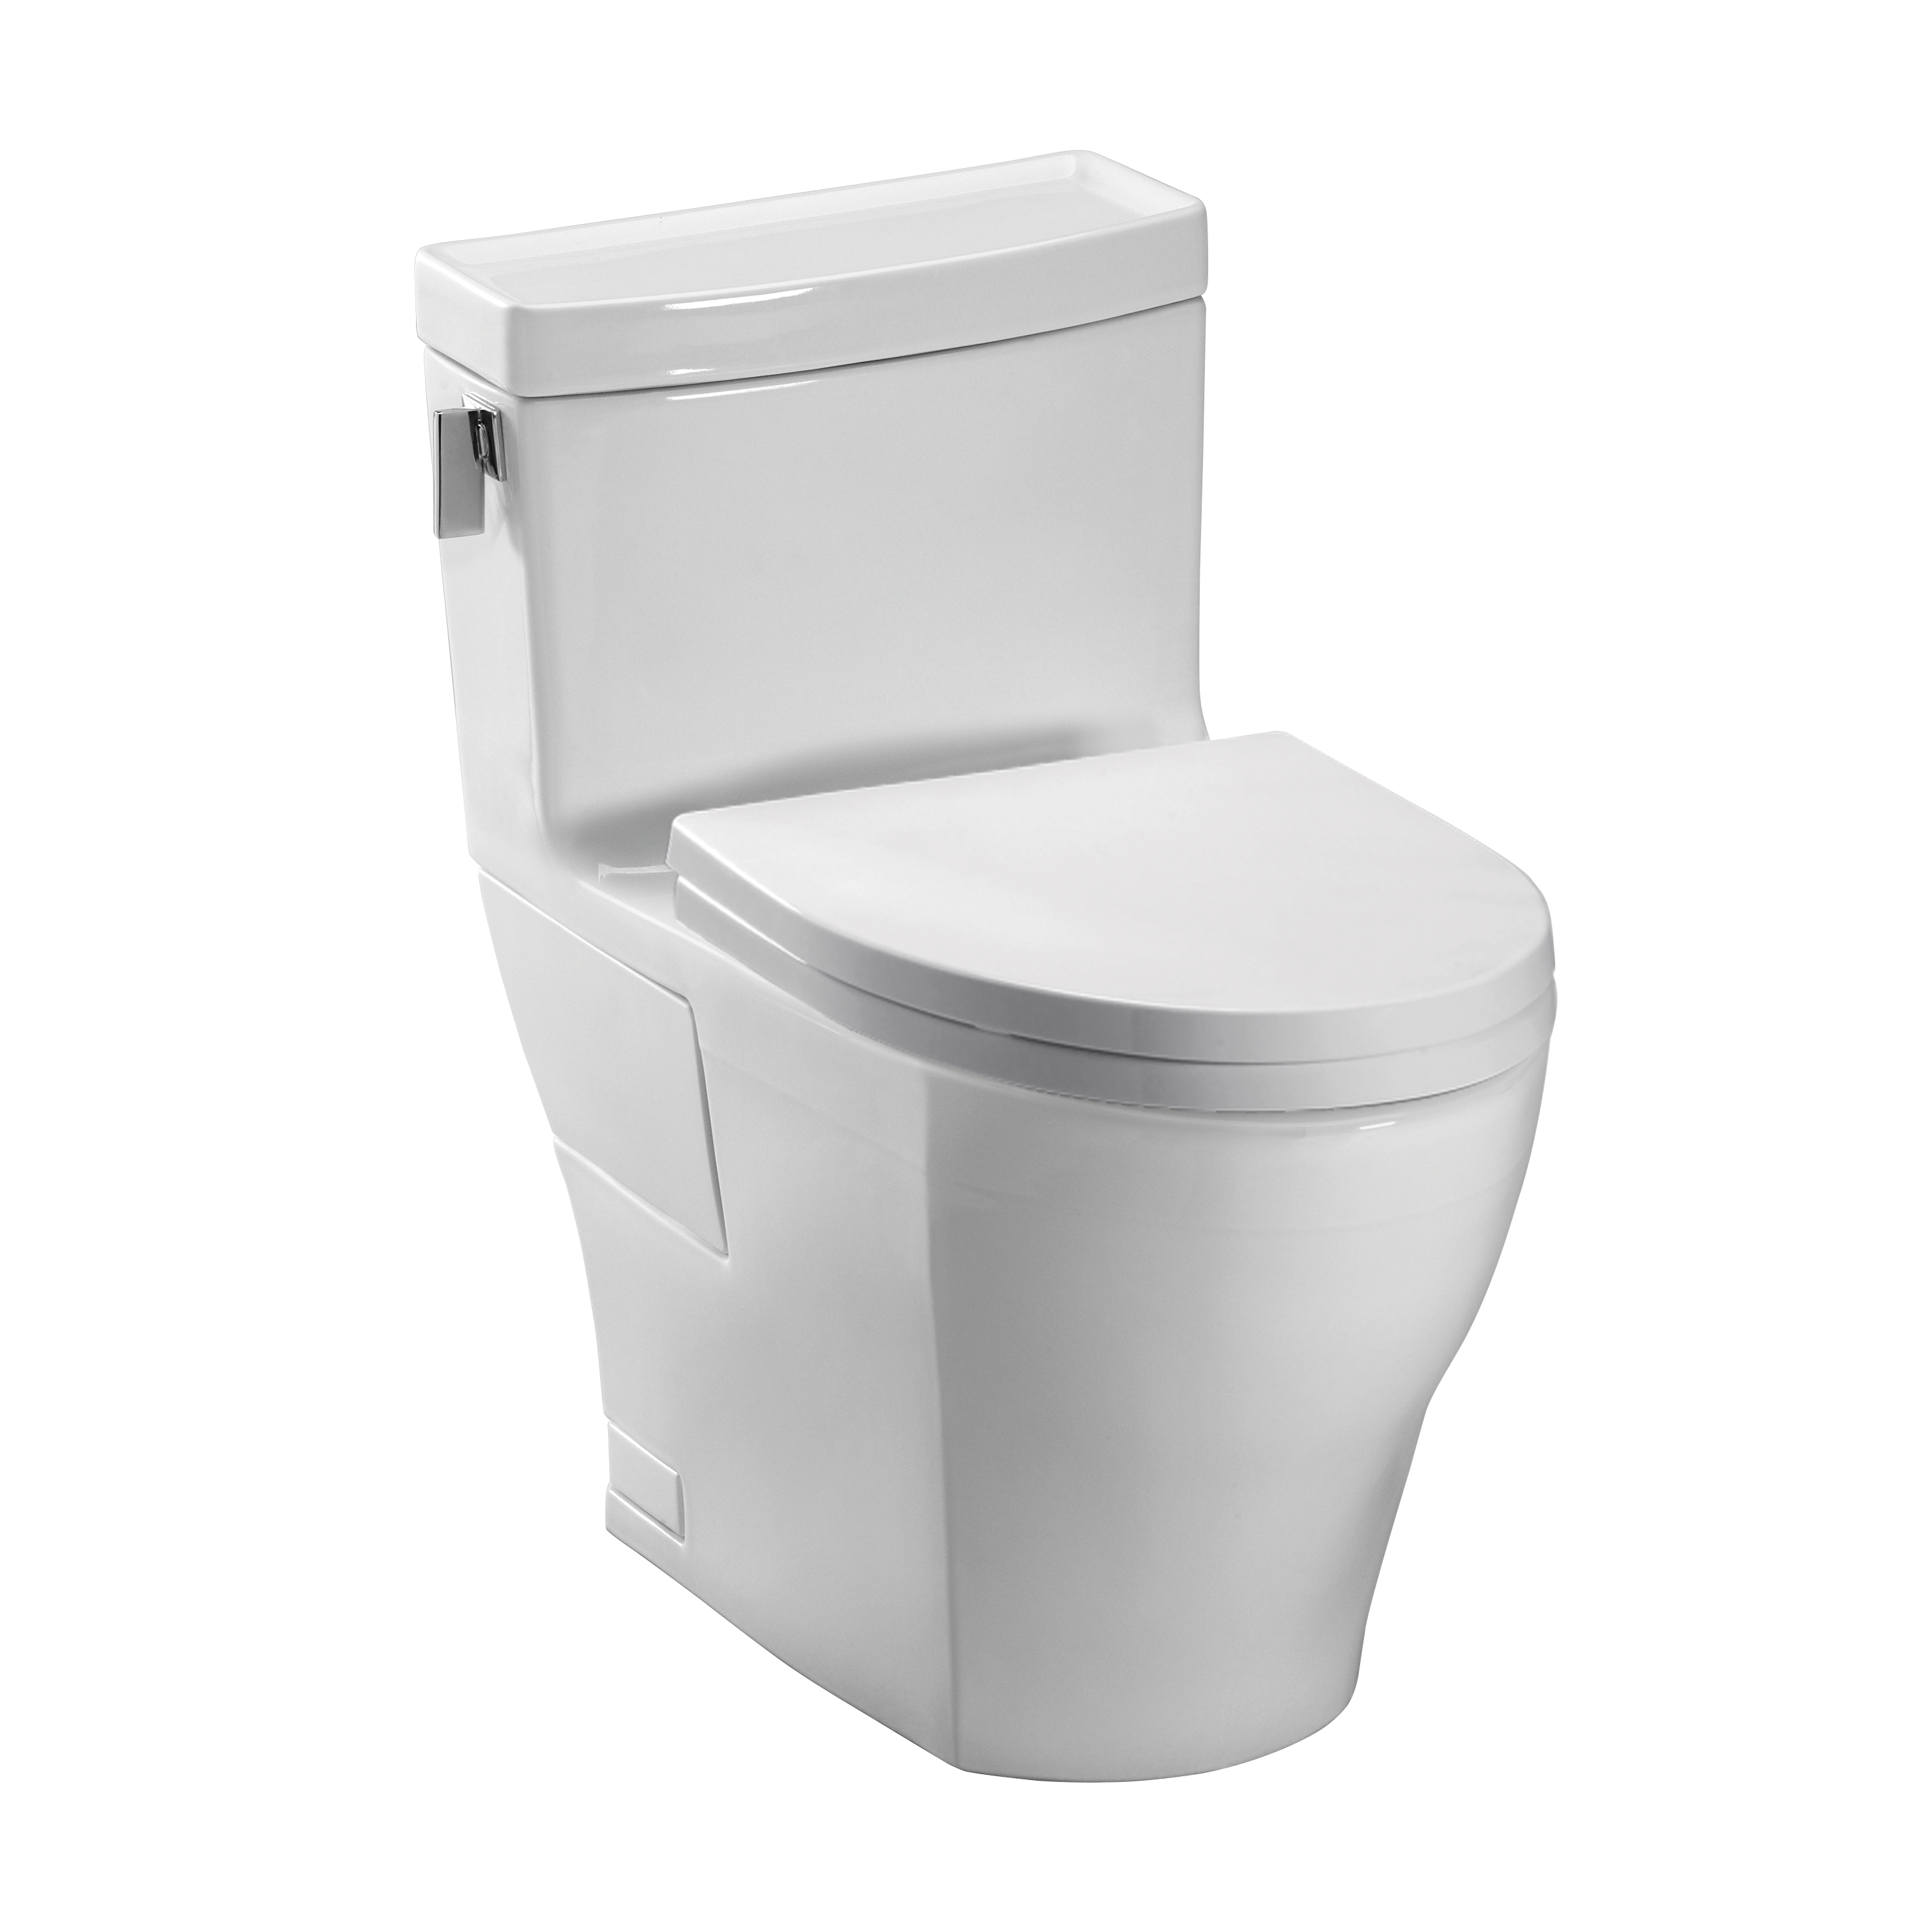 Toto MS624214CEF Legato One-piece High-efficiency Toilet, 1.28gpf ...